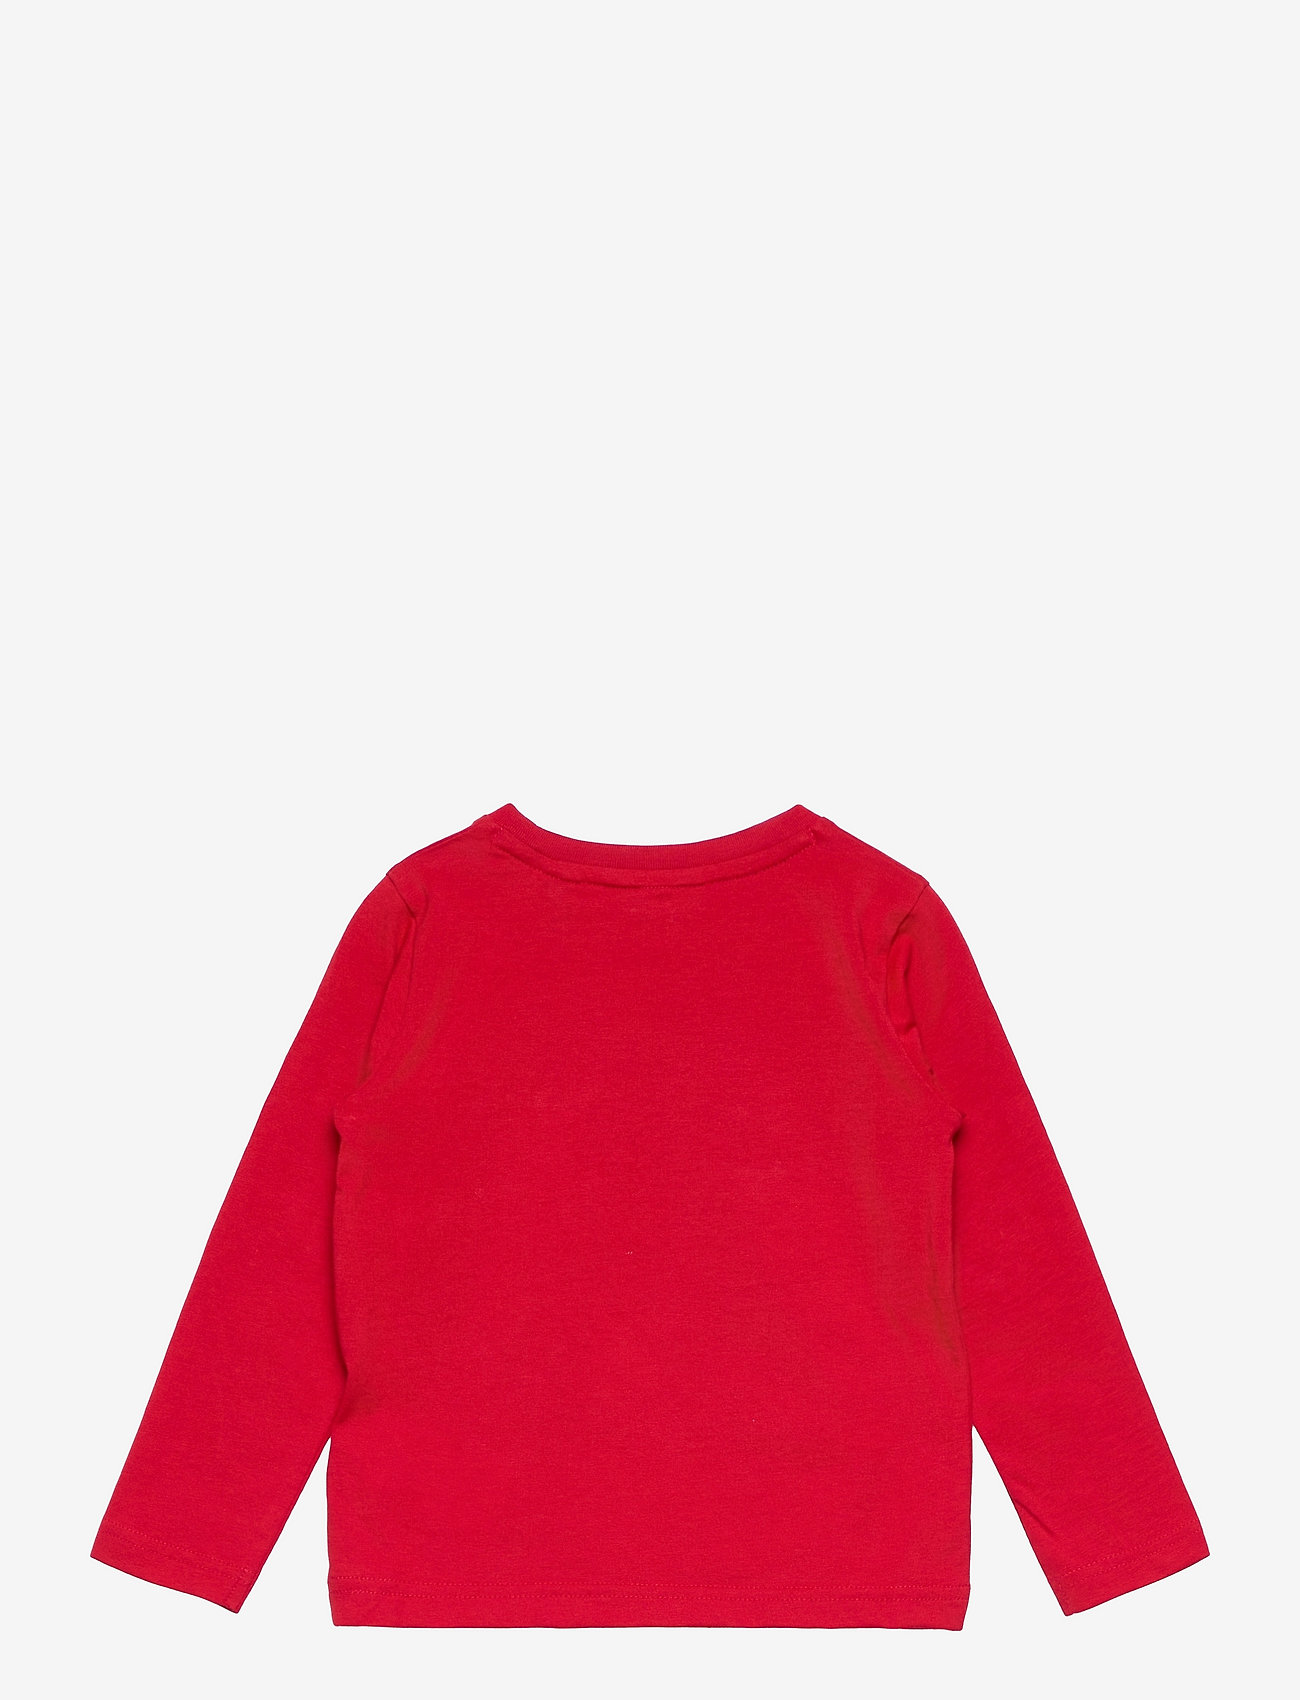 GANT - ARCHIVE SHIELD LS T-SHIRT - long-sleeved - equestrian red - 1